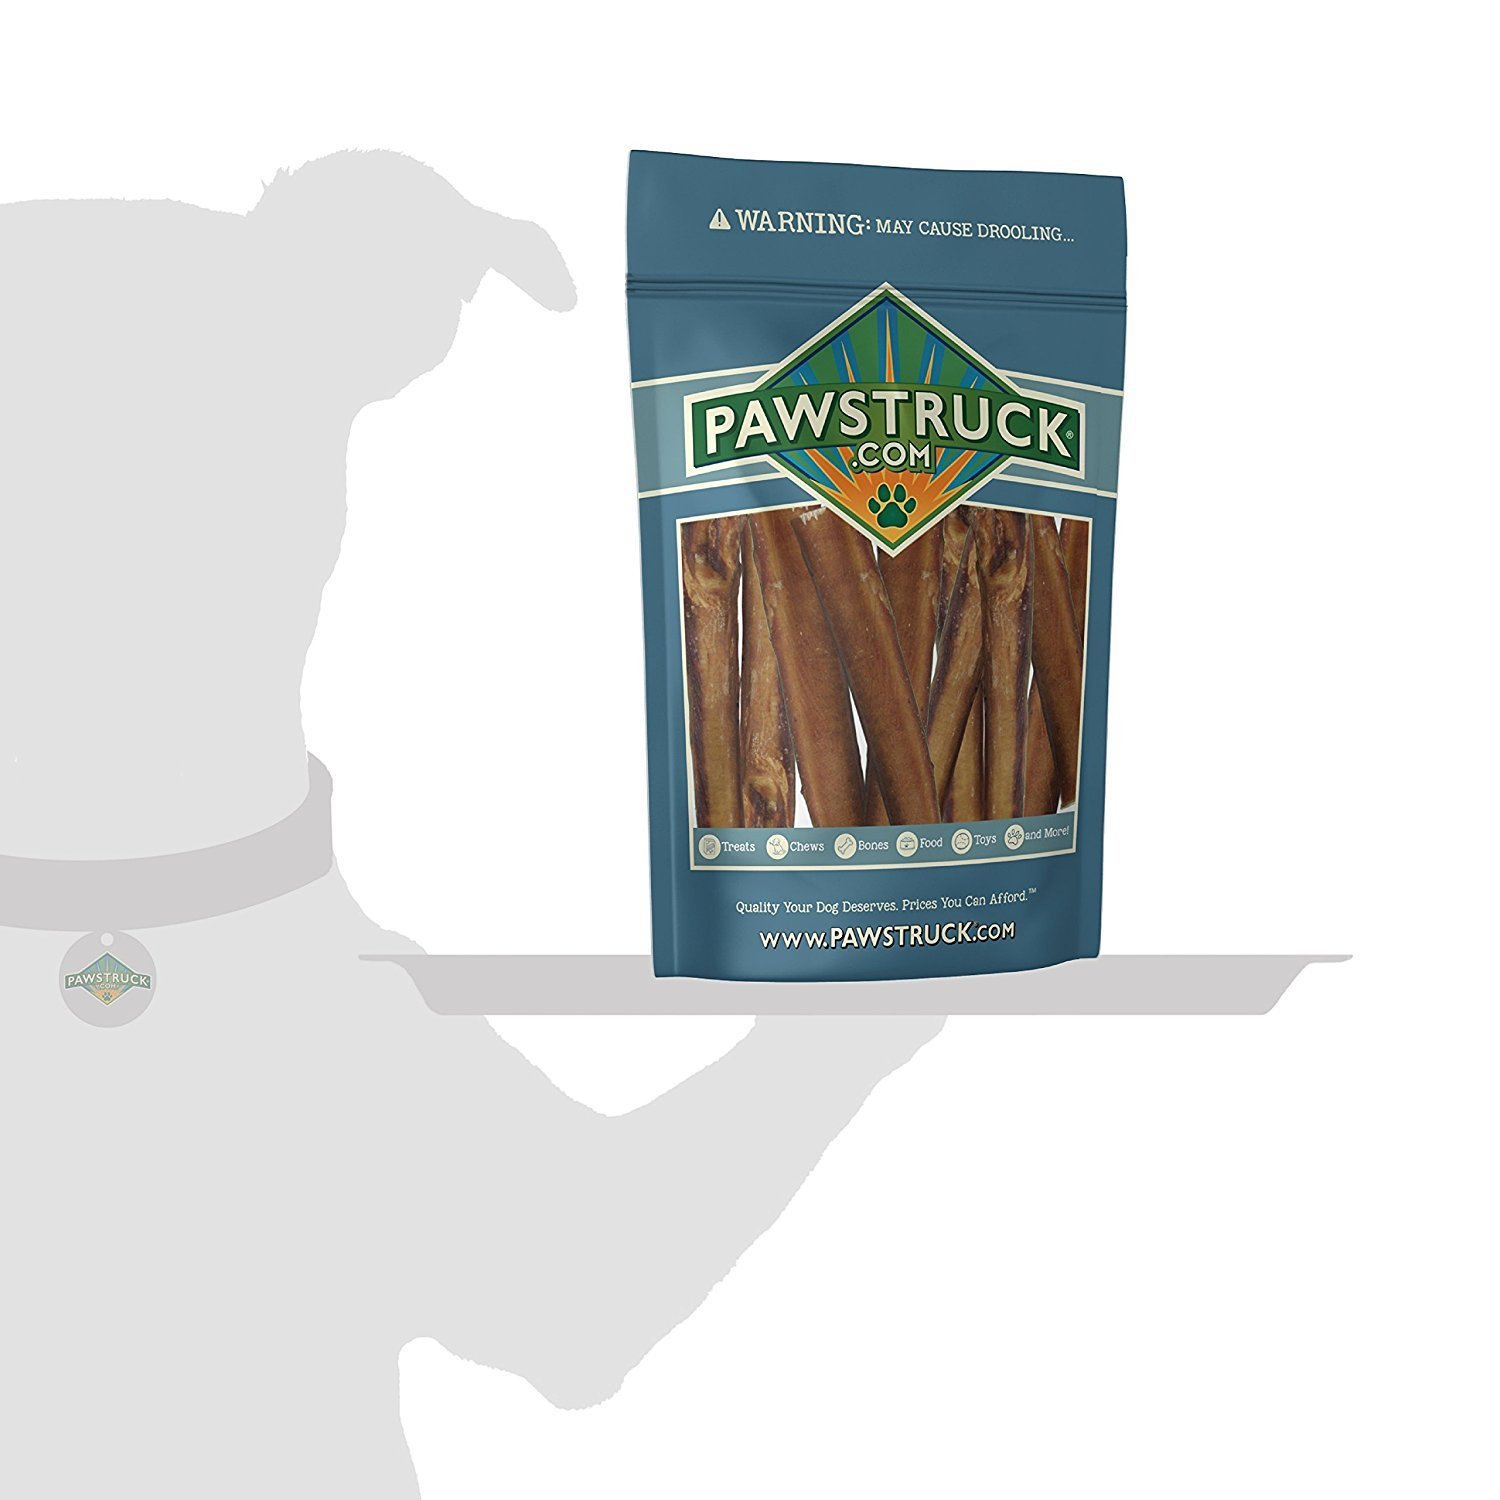 5'' Straight Bully Sticks for Dogs or Puppies (50 Pack) All Natural & Odorless Bully Bones | Grass-Fed Beef | Medium Thickness Long Lasting Dog Chew Dental Pizzle Treats | Best Thick Bullie Stix